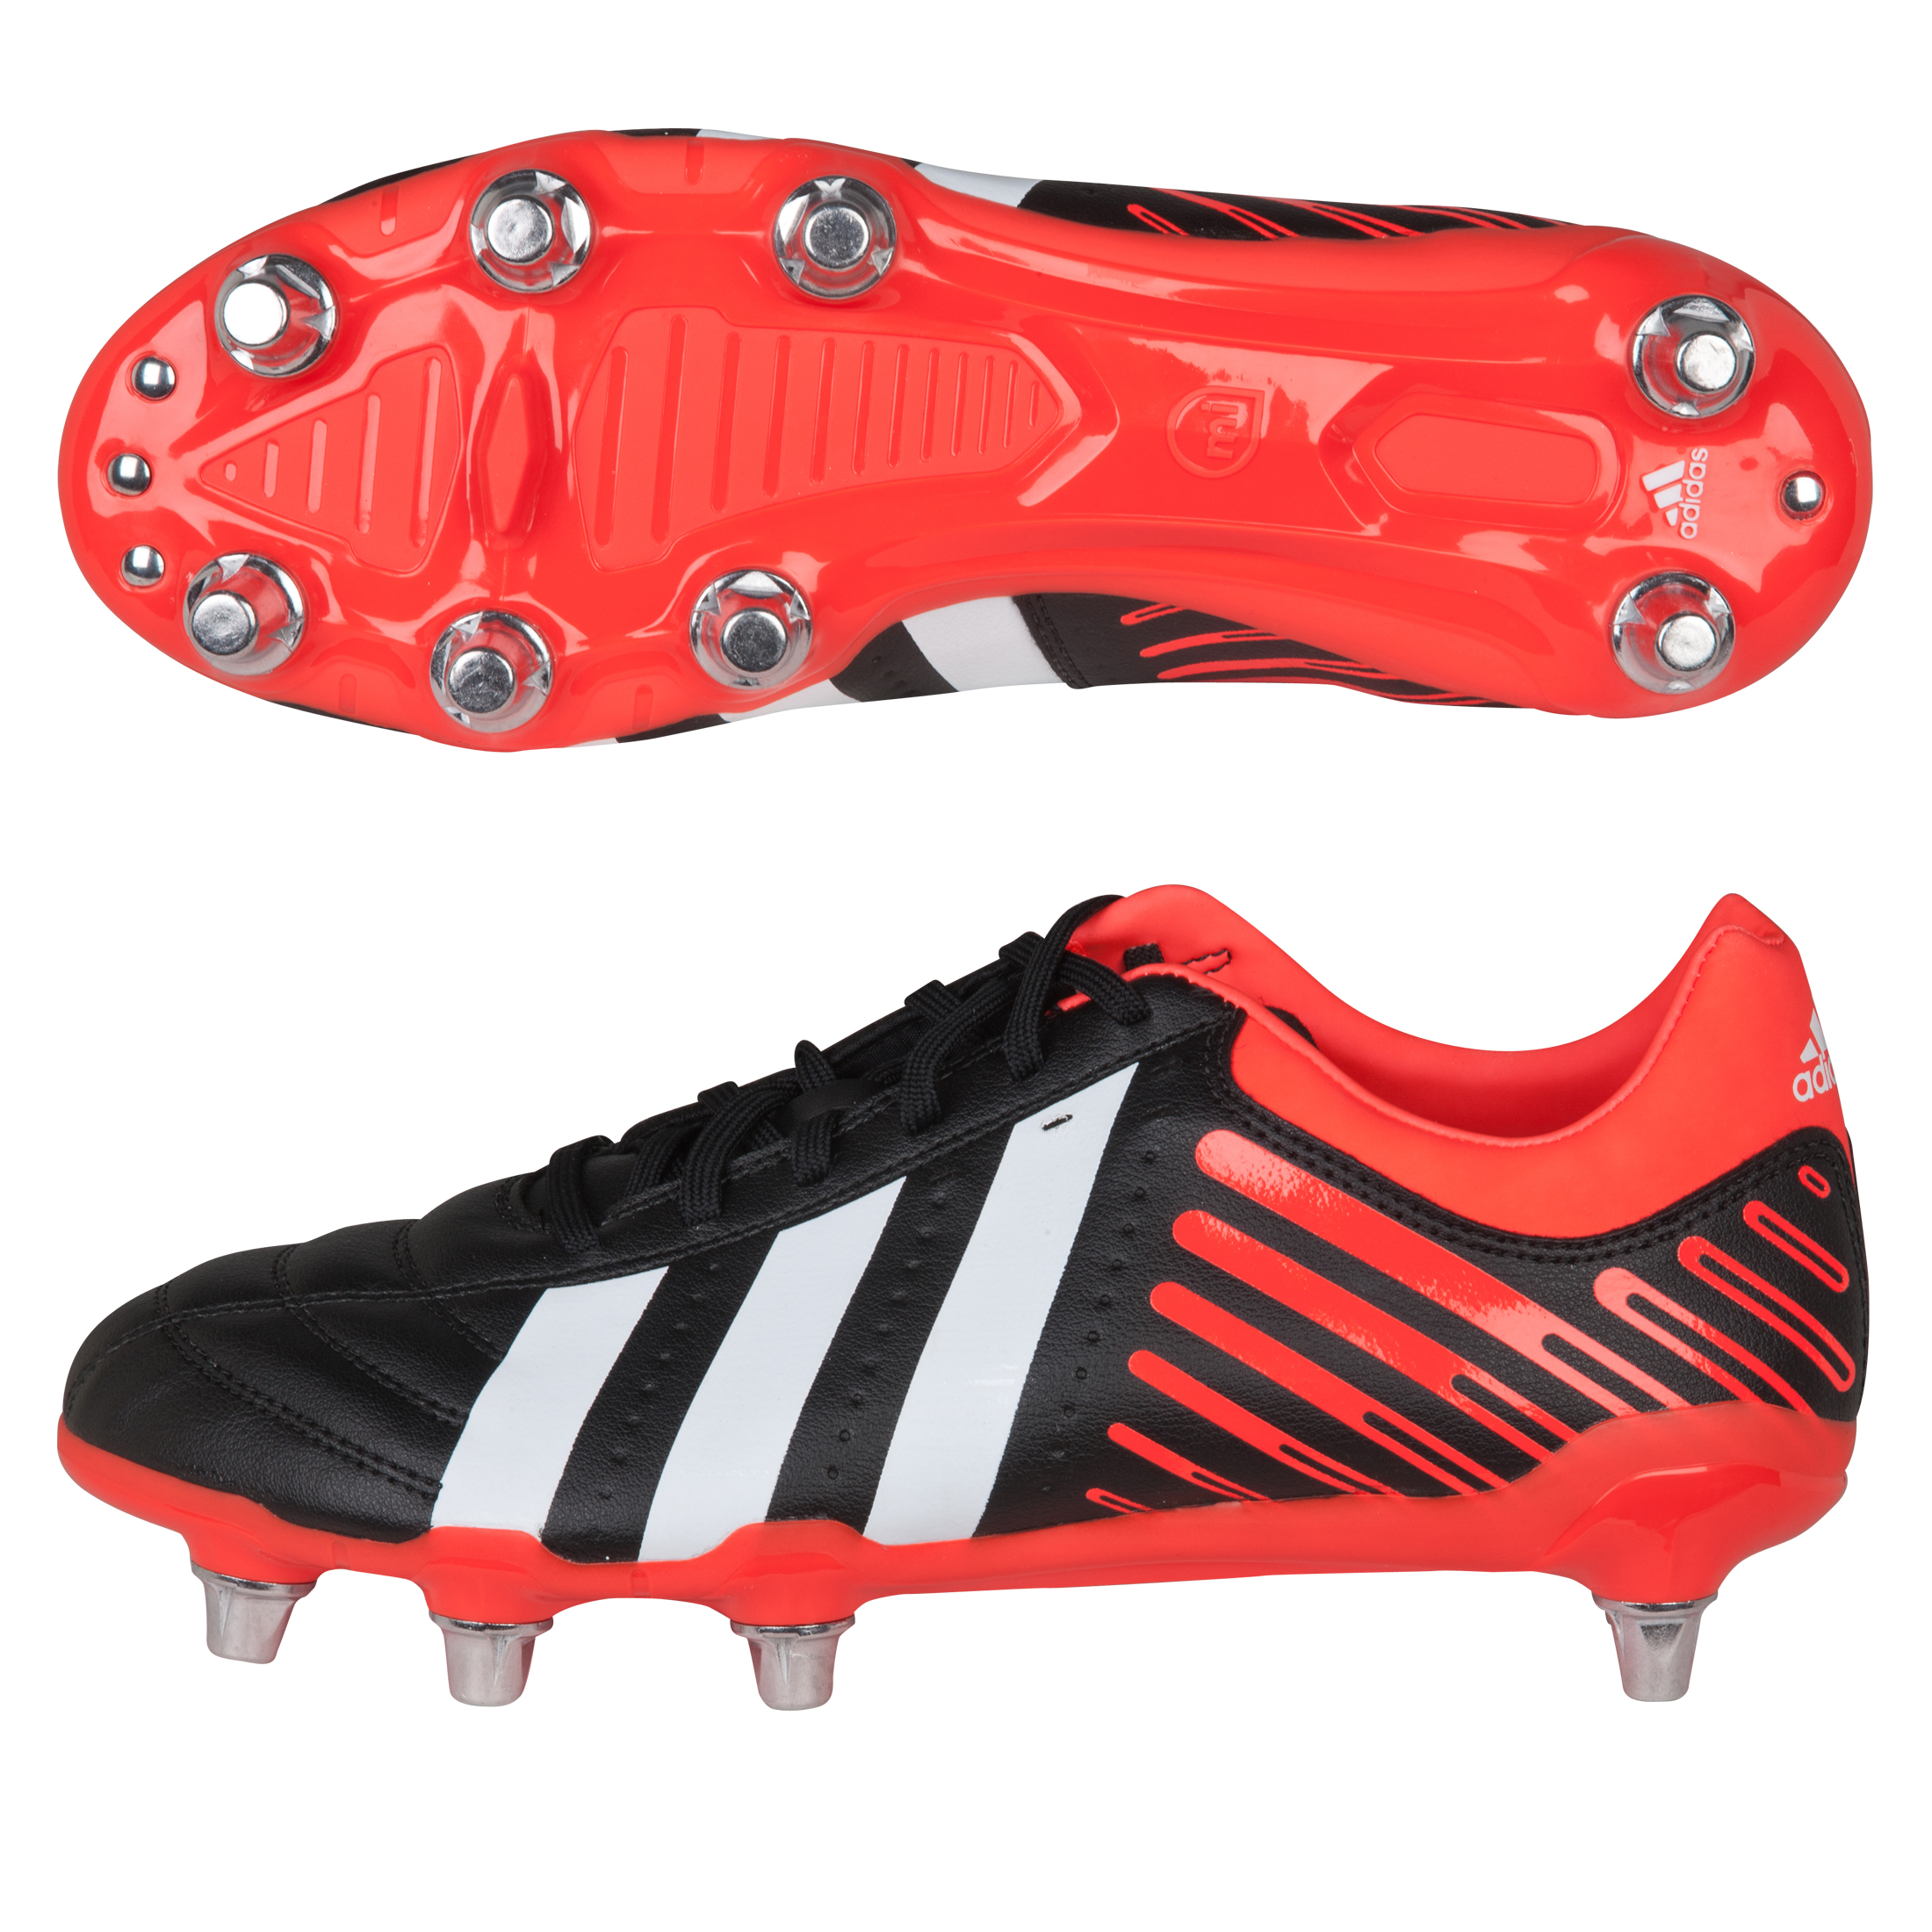 Adidas Regulate Kakari Soft Ground Rugby Boots - Black/Running White/Infrared